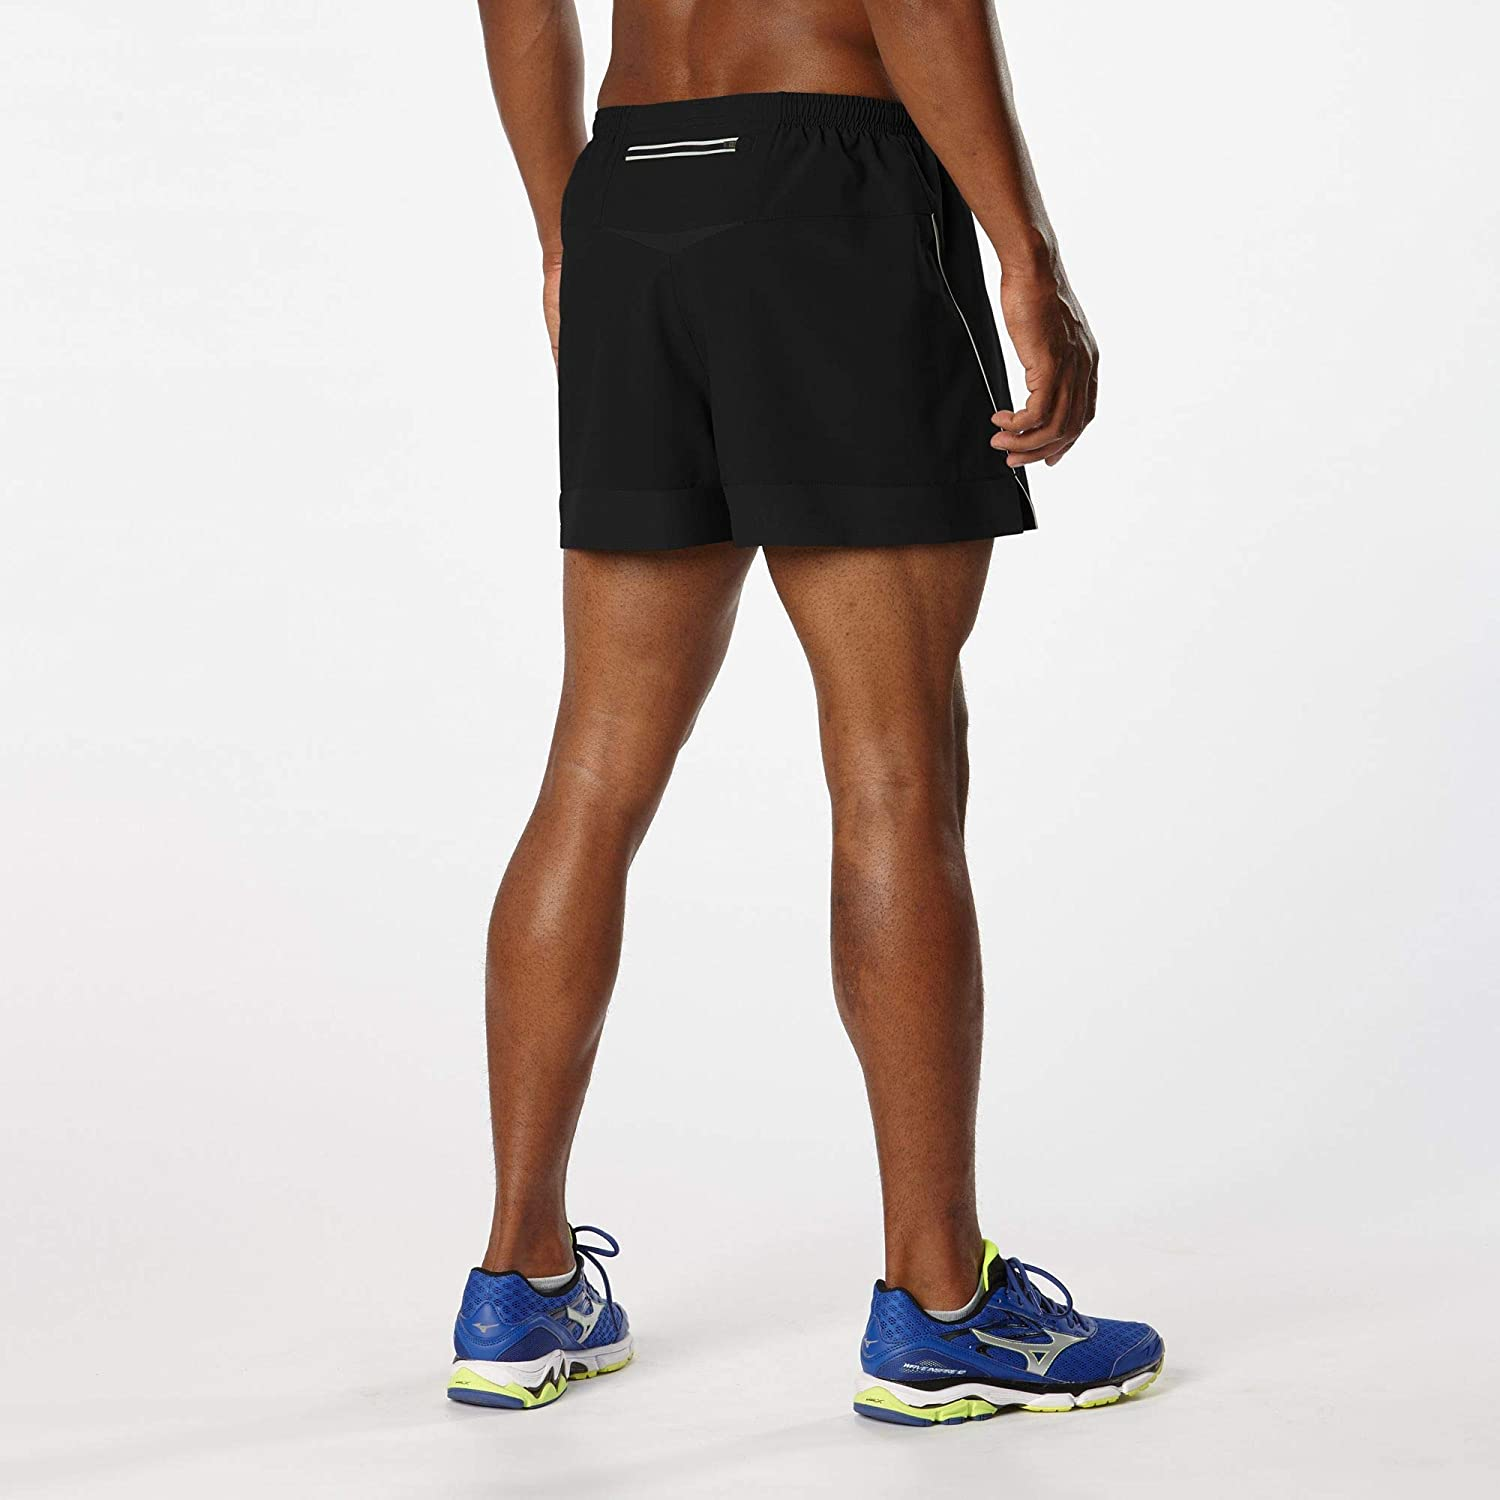 R-Gear Mens Mile Master 3-inch Split Shorts with Pockets Liner and DRYROAD Fabric